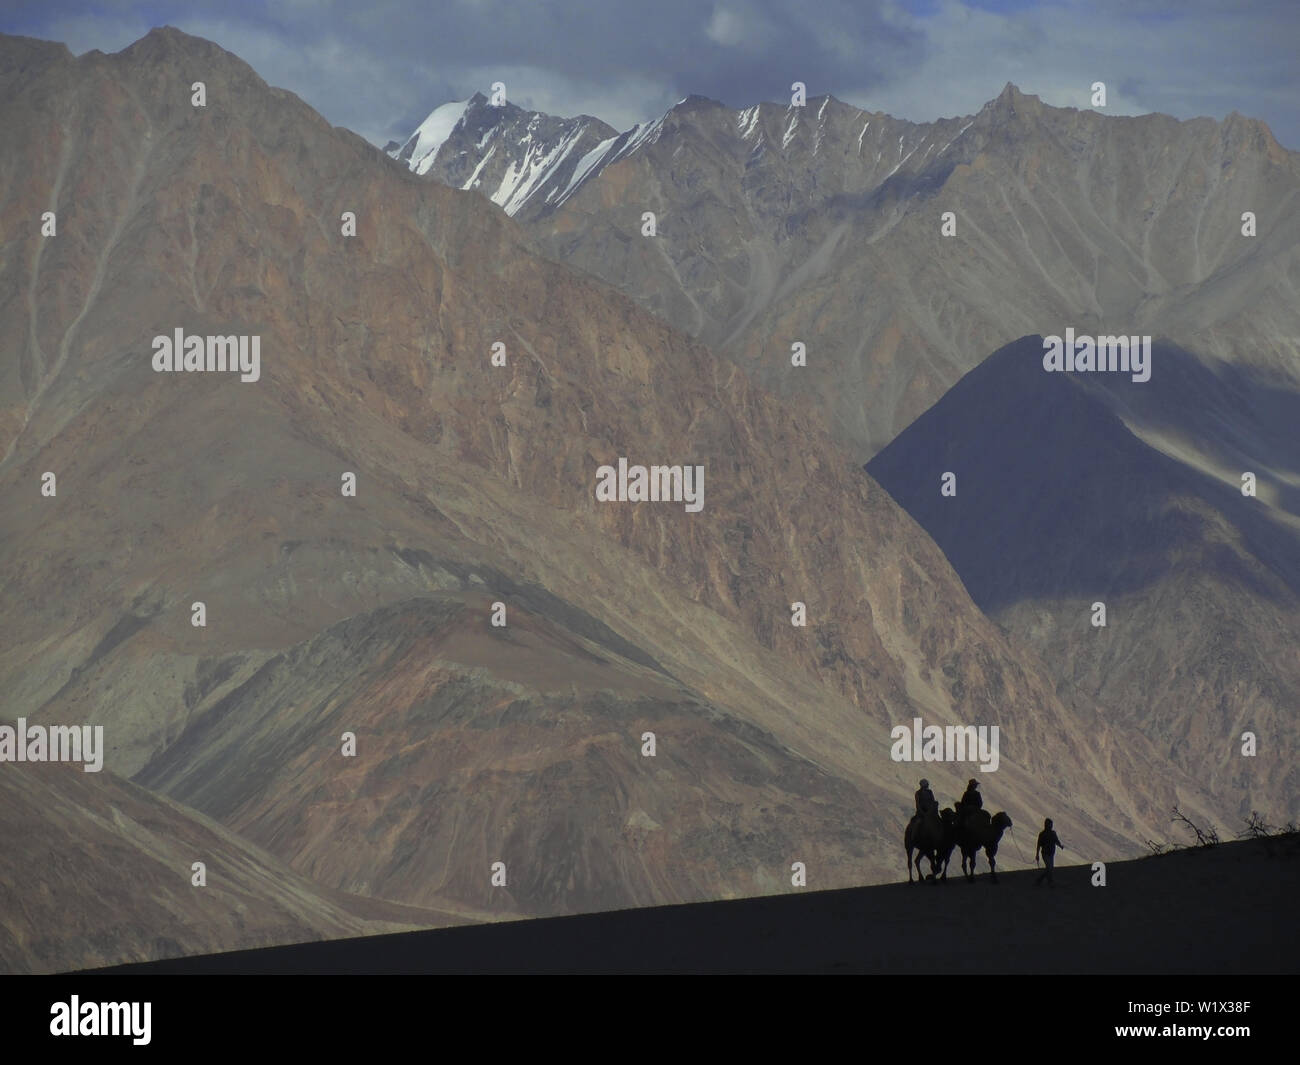 In the afternoon the silhouette of two tourist being towed by the camel herdsmen in the Himalayas. - Stock Image